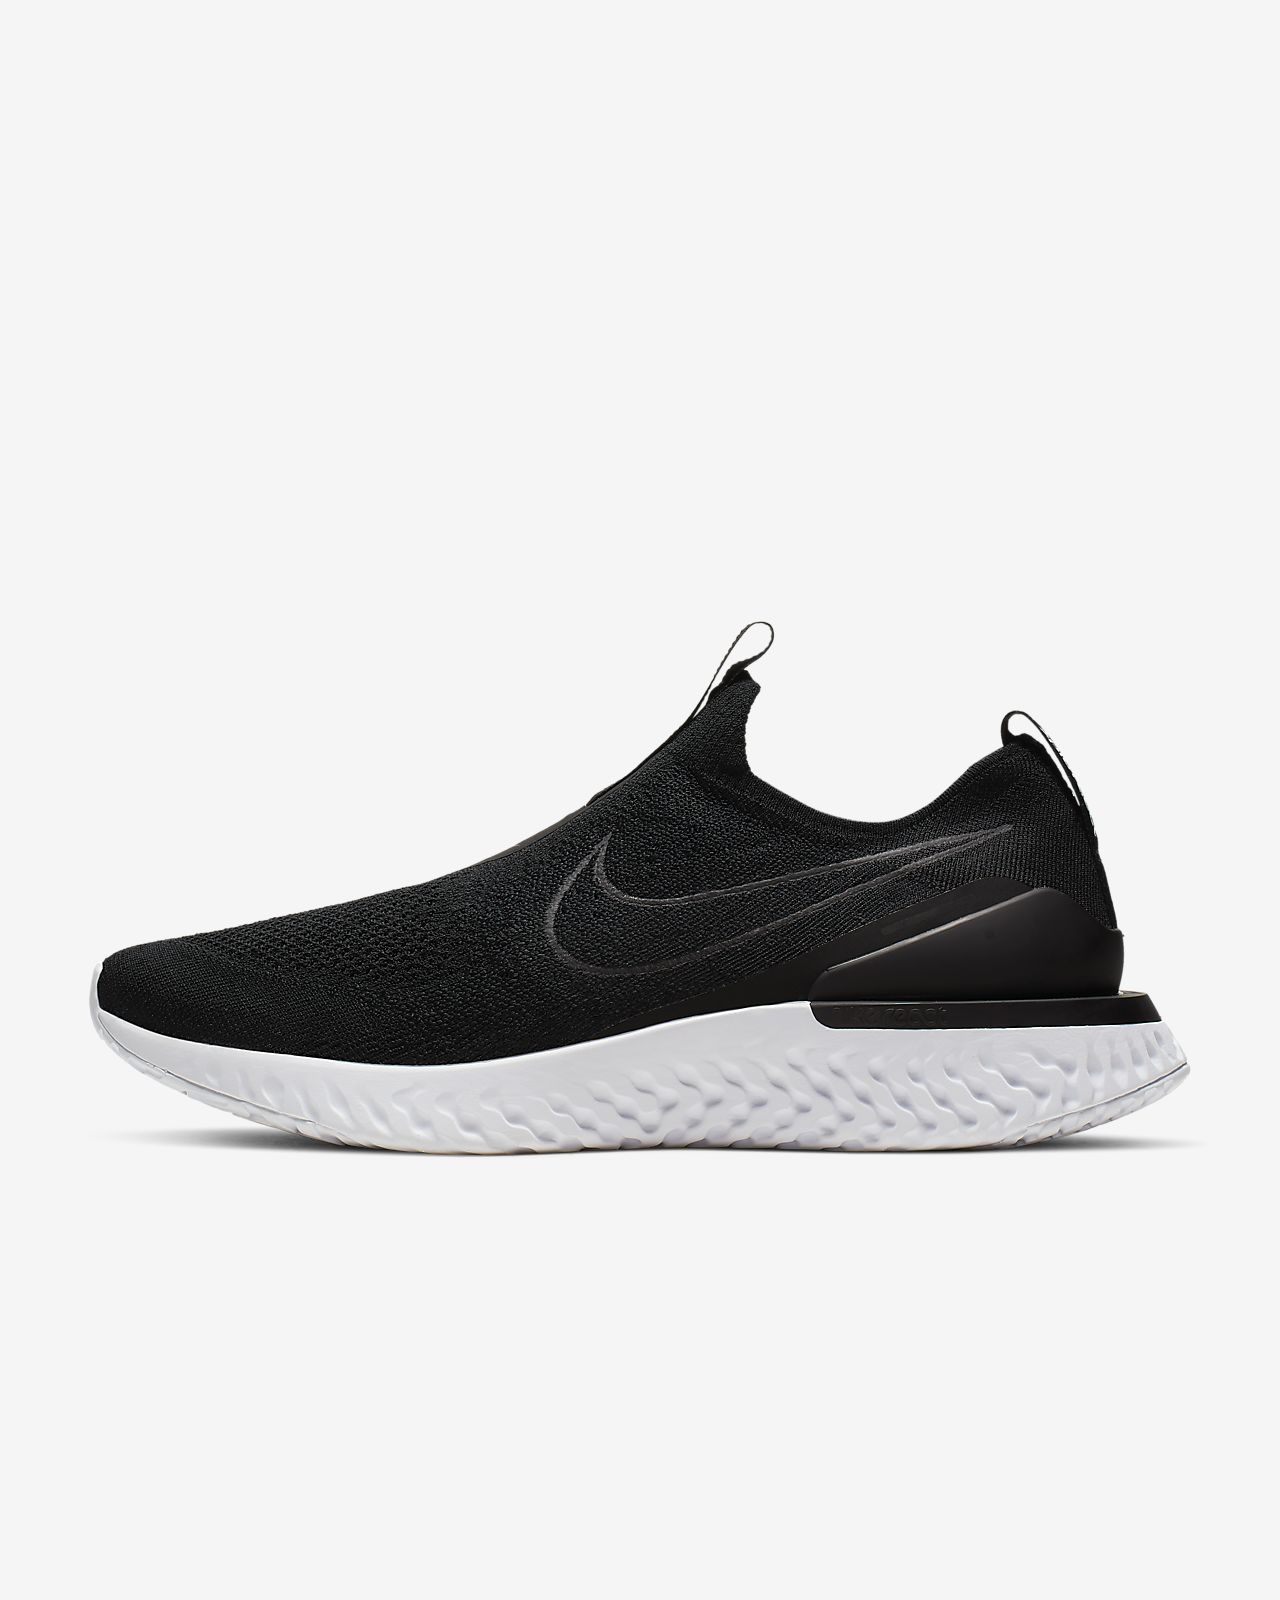 buy popular be3ee 0a4cc ... Nike Epic Phantom React Flyknit Men s Running Shoe